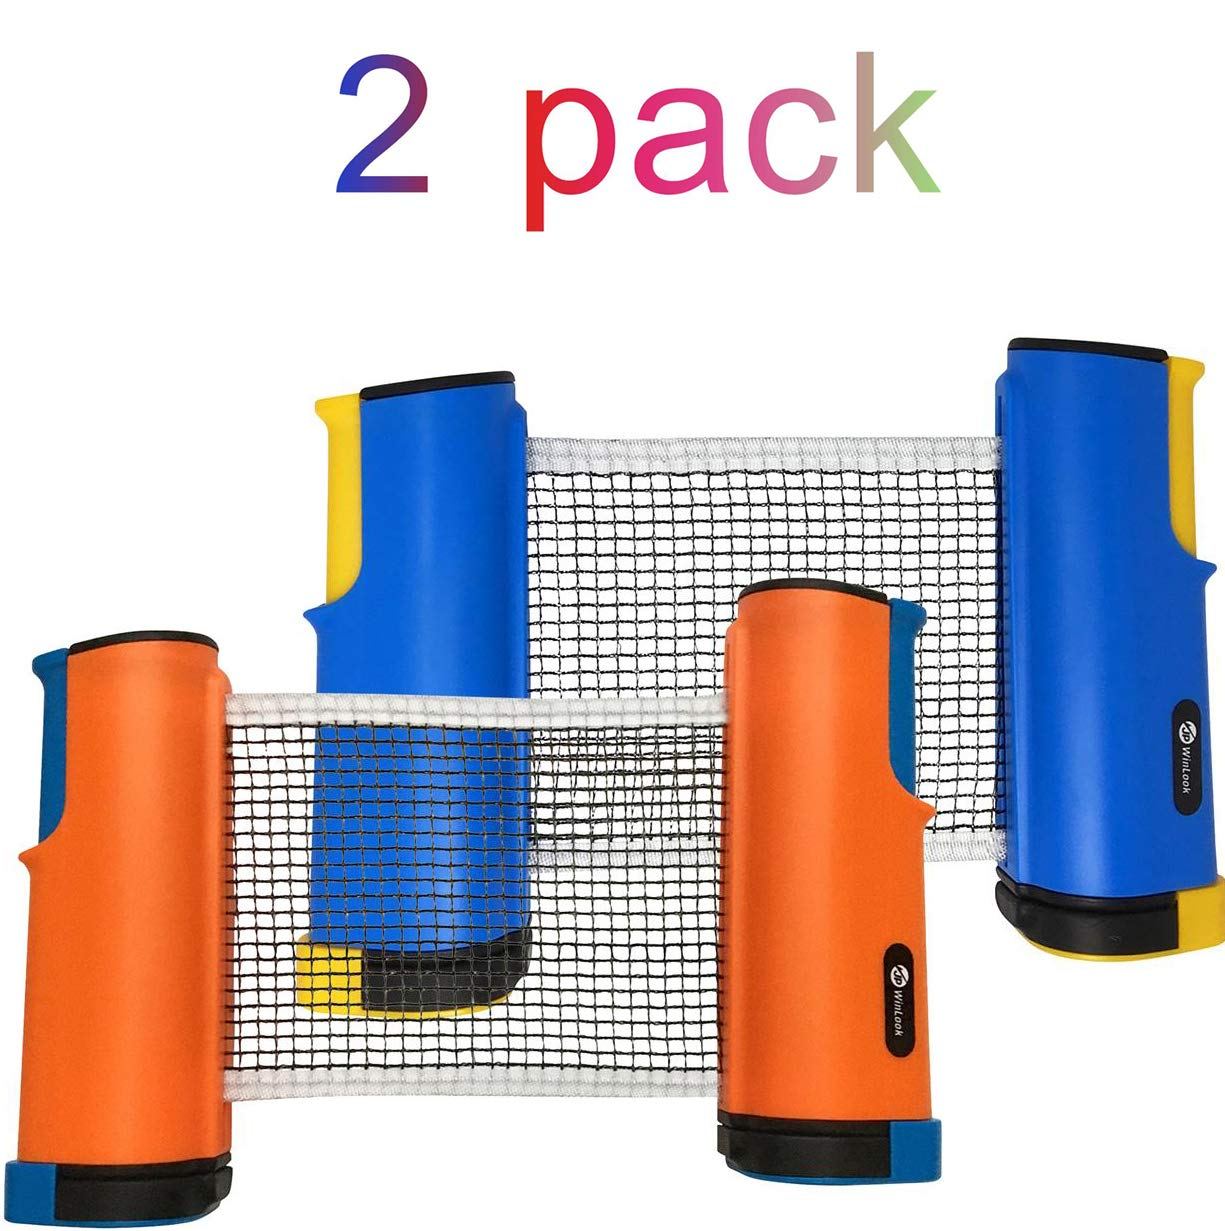 JP WinLook Ping Pong Net - 2 Pack; Retractable Table Tennis Nets & Post Set; Adjustable Any Table Anywhere; Portable Holder Cover Case; Indoor Outdoor Game Replacement Accessories; Bracket Clamps by JP WinLook